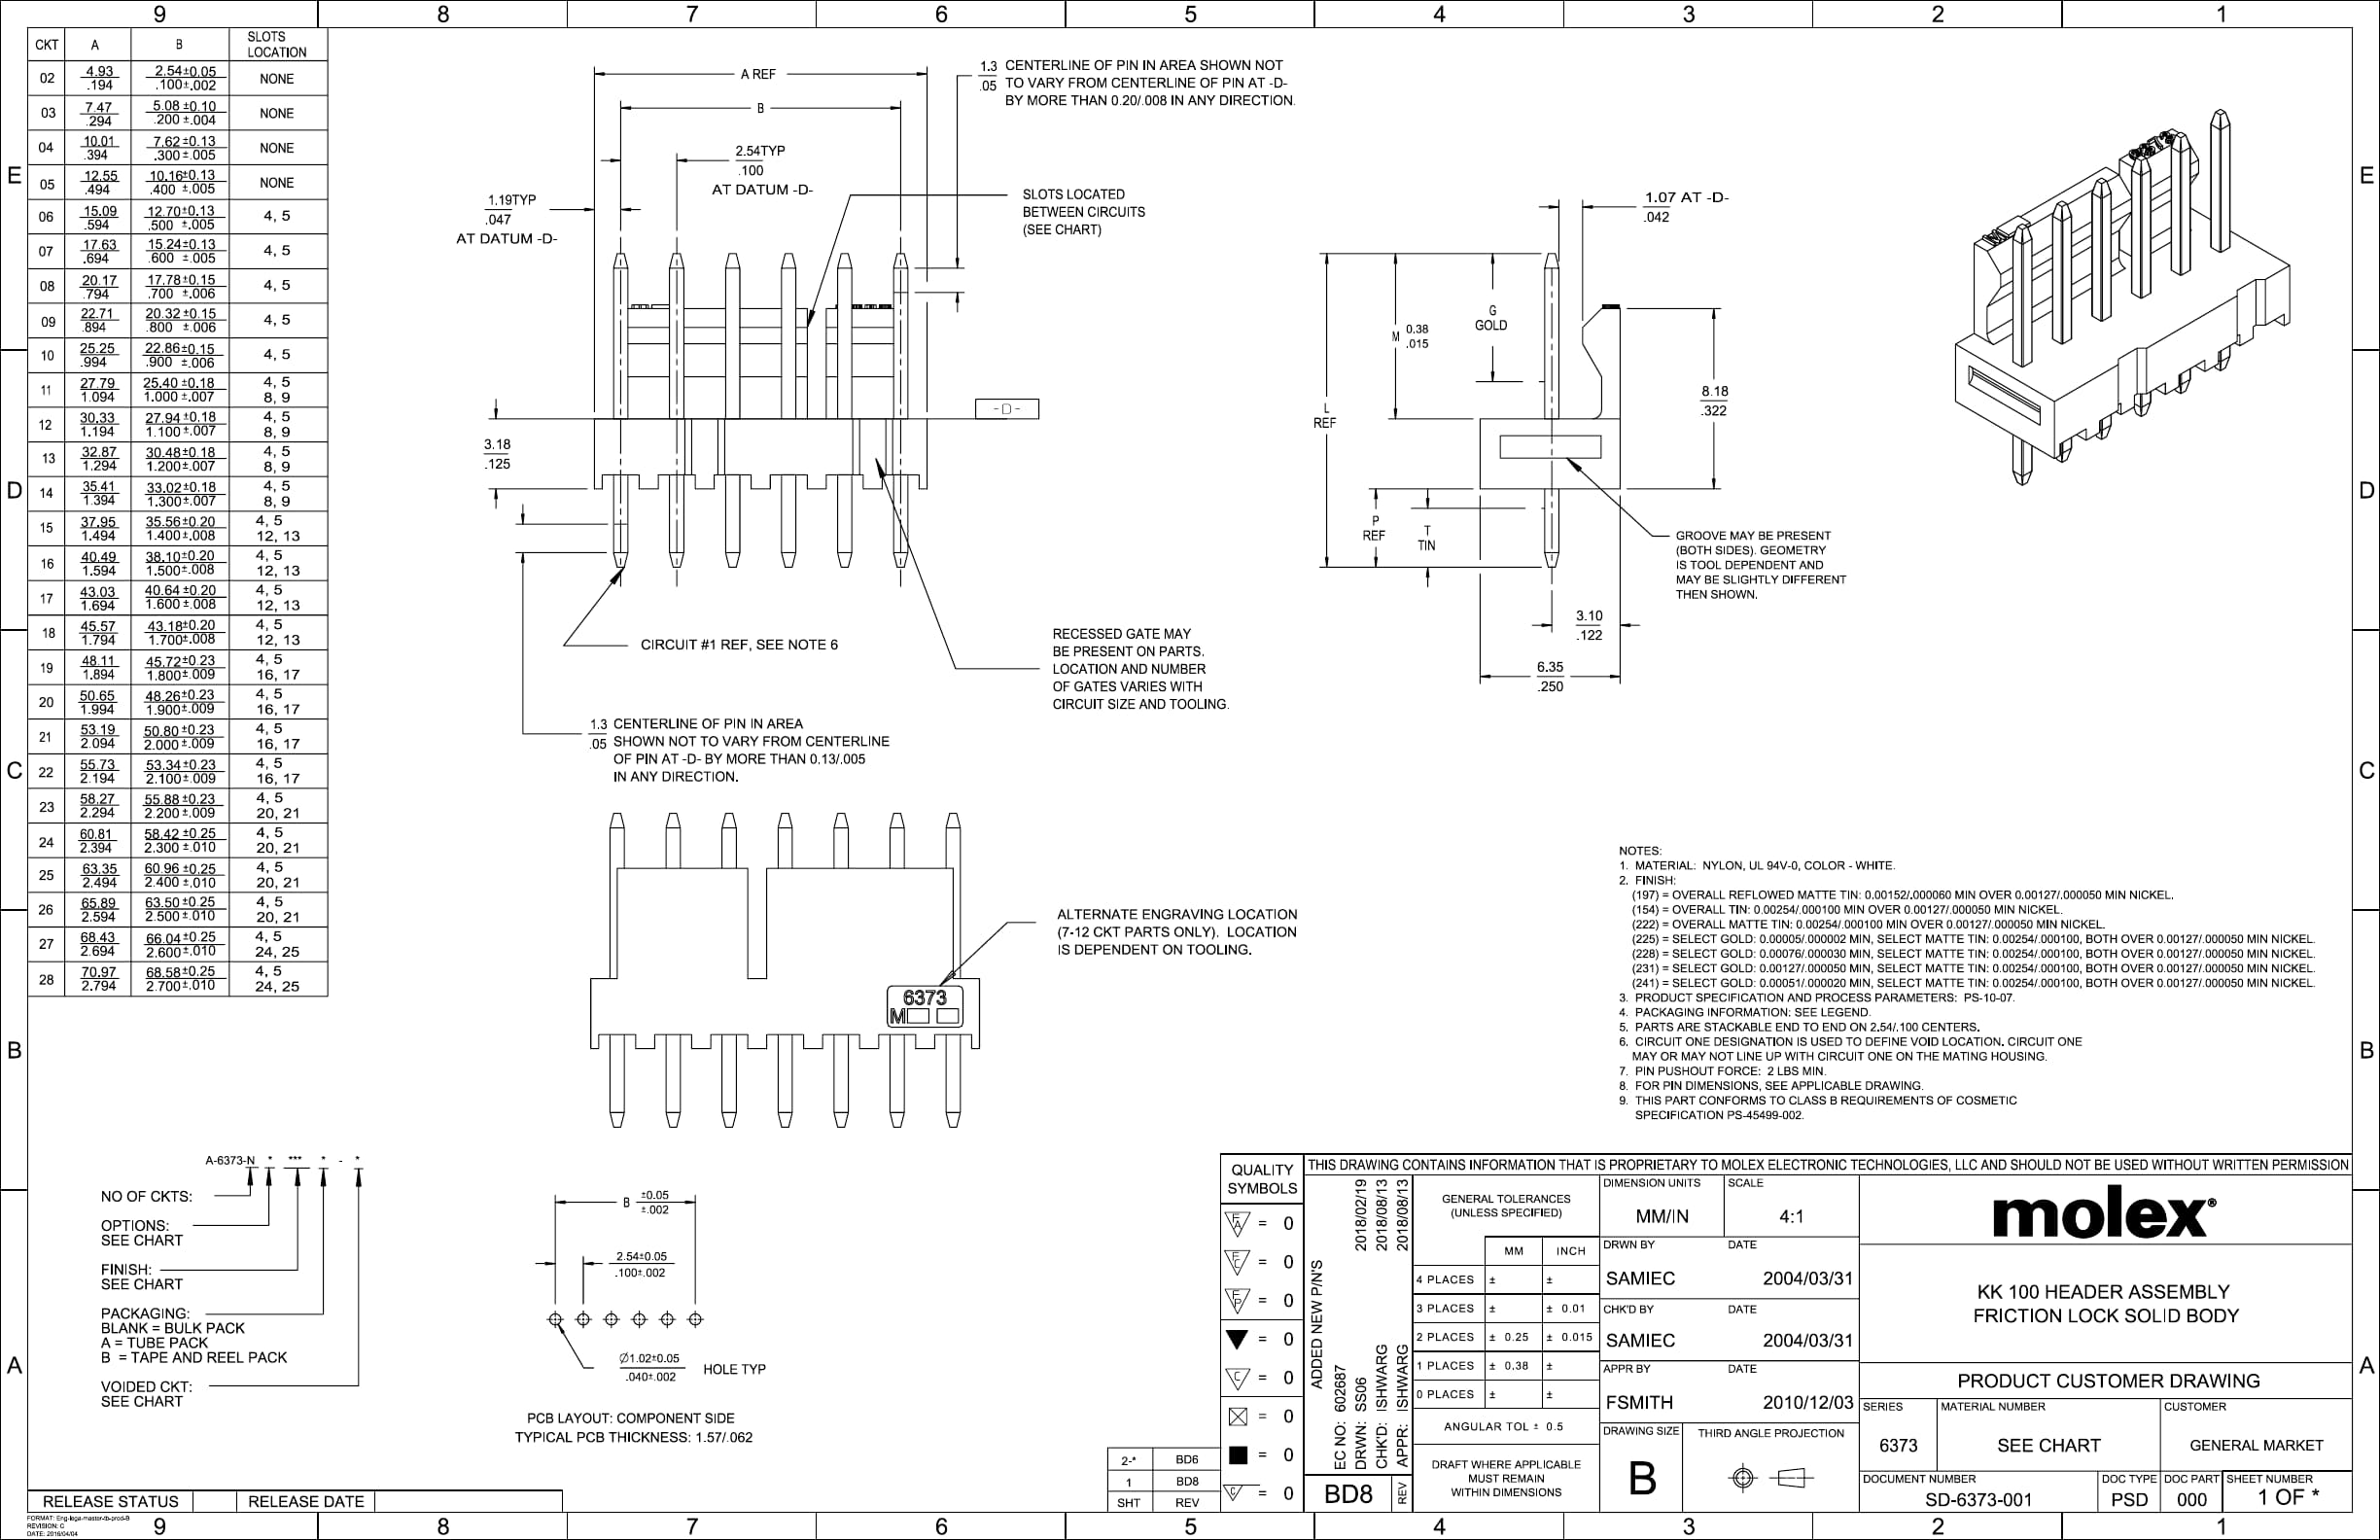 Kk 100 Header Assembly Drawing